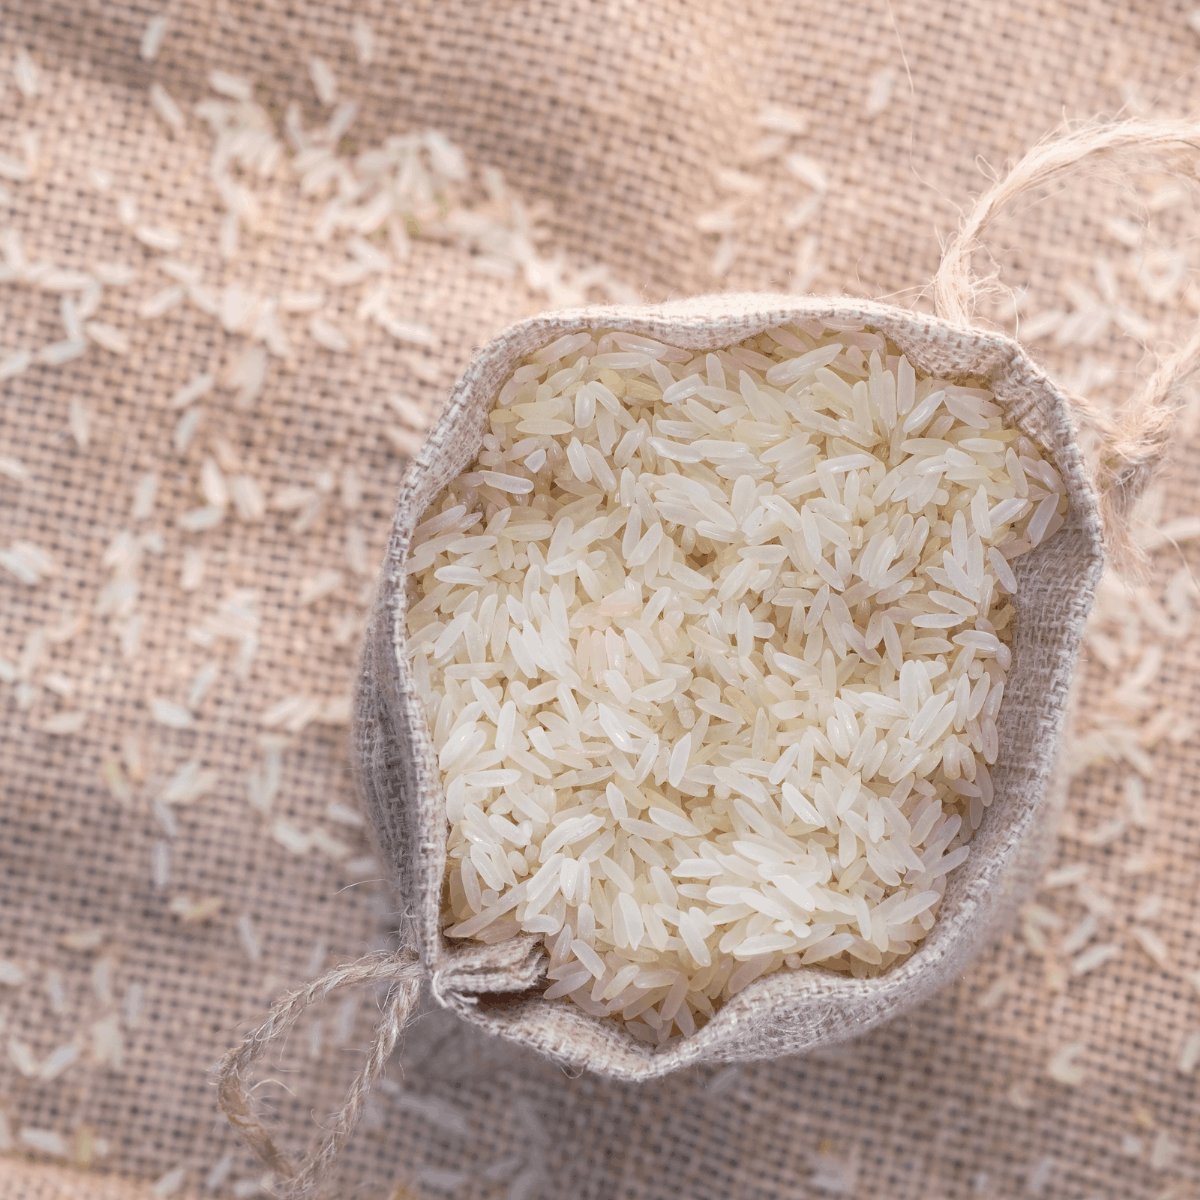 bag of white rice on rice paper